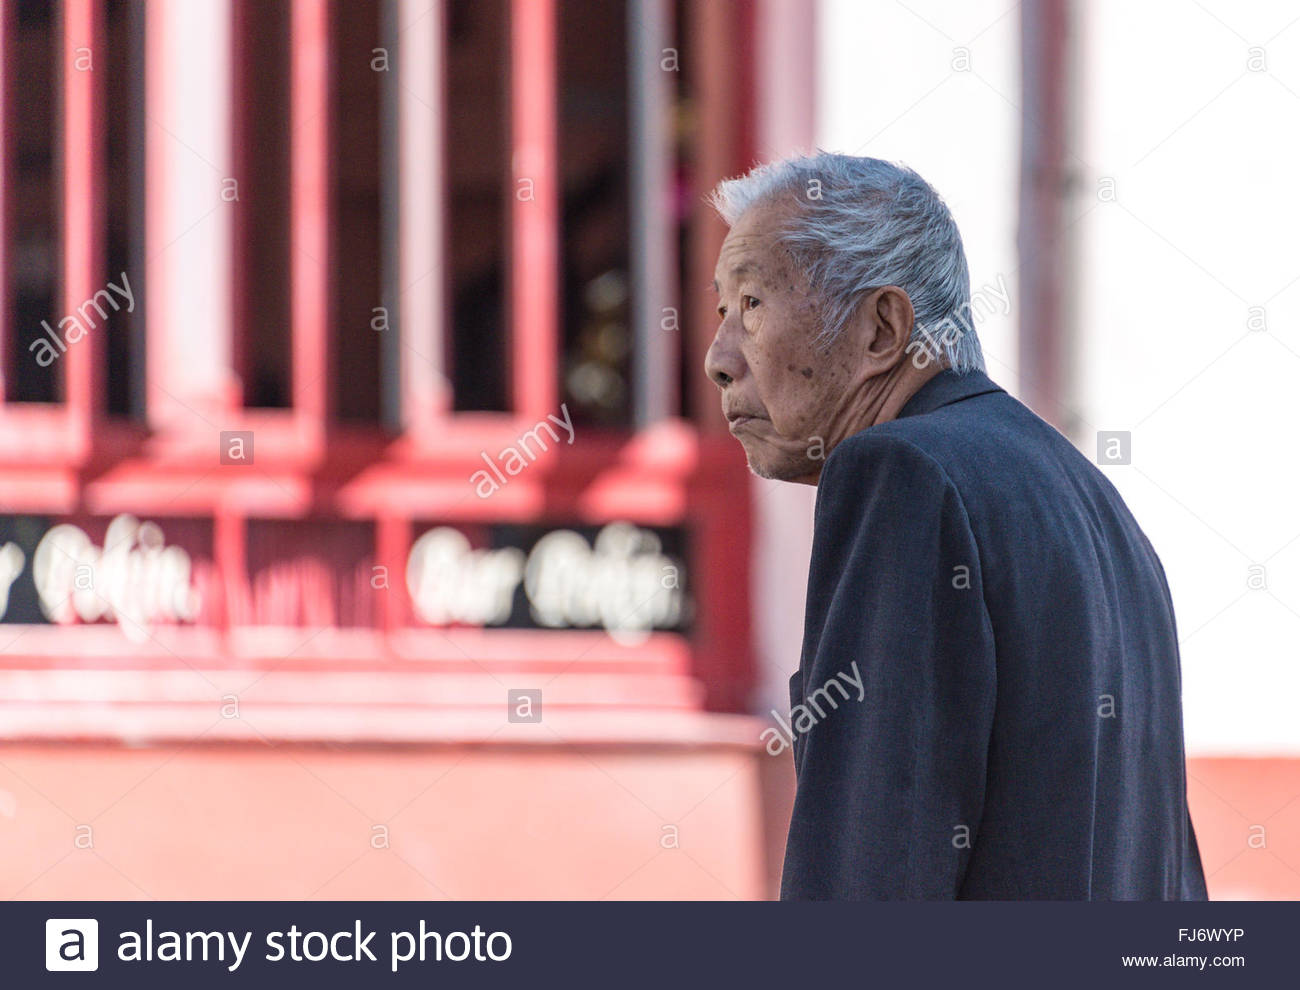 Chinese or Asian immigration to Cuba: senior in Chinatown a main tourist landmark in the Caribbean Capital city. - Stock Image